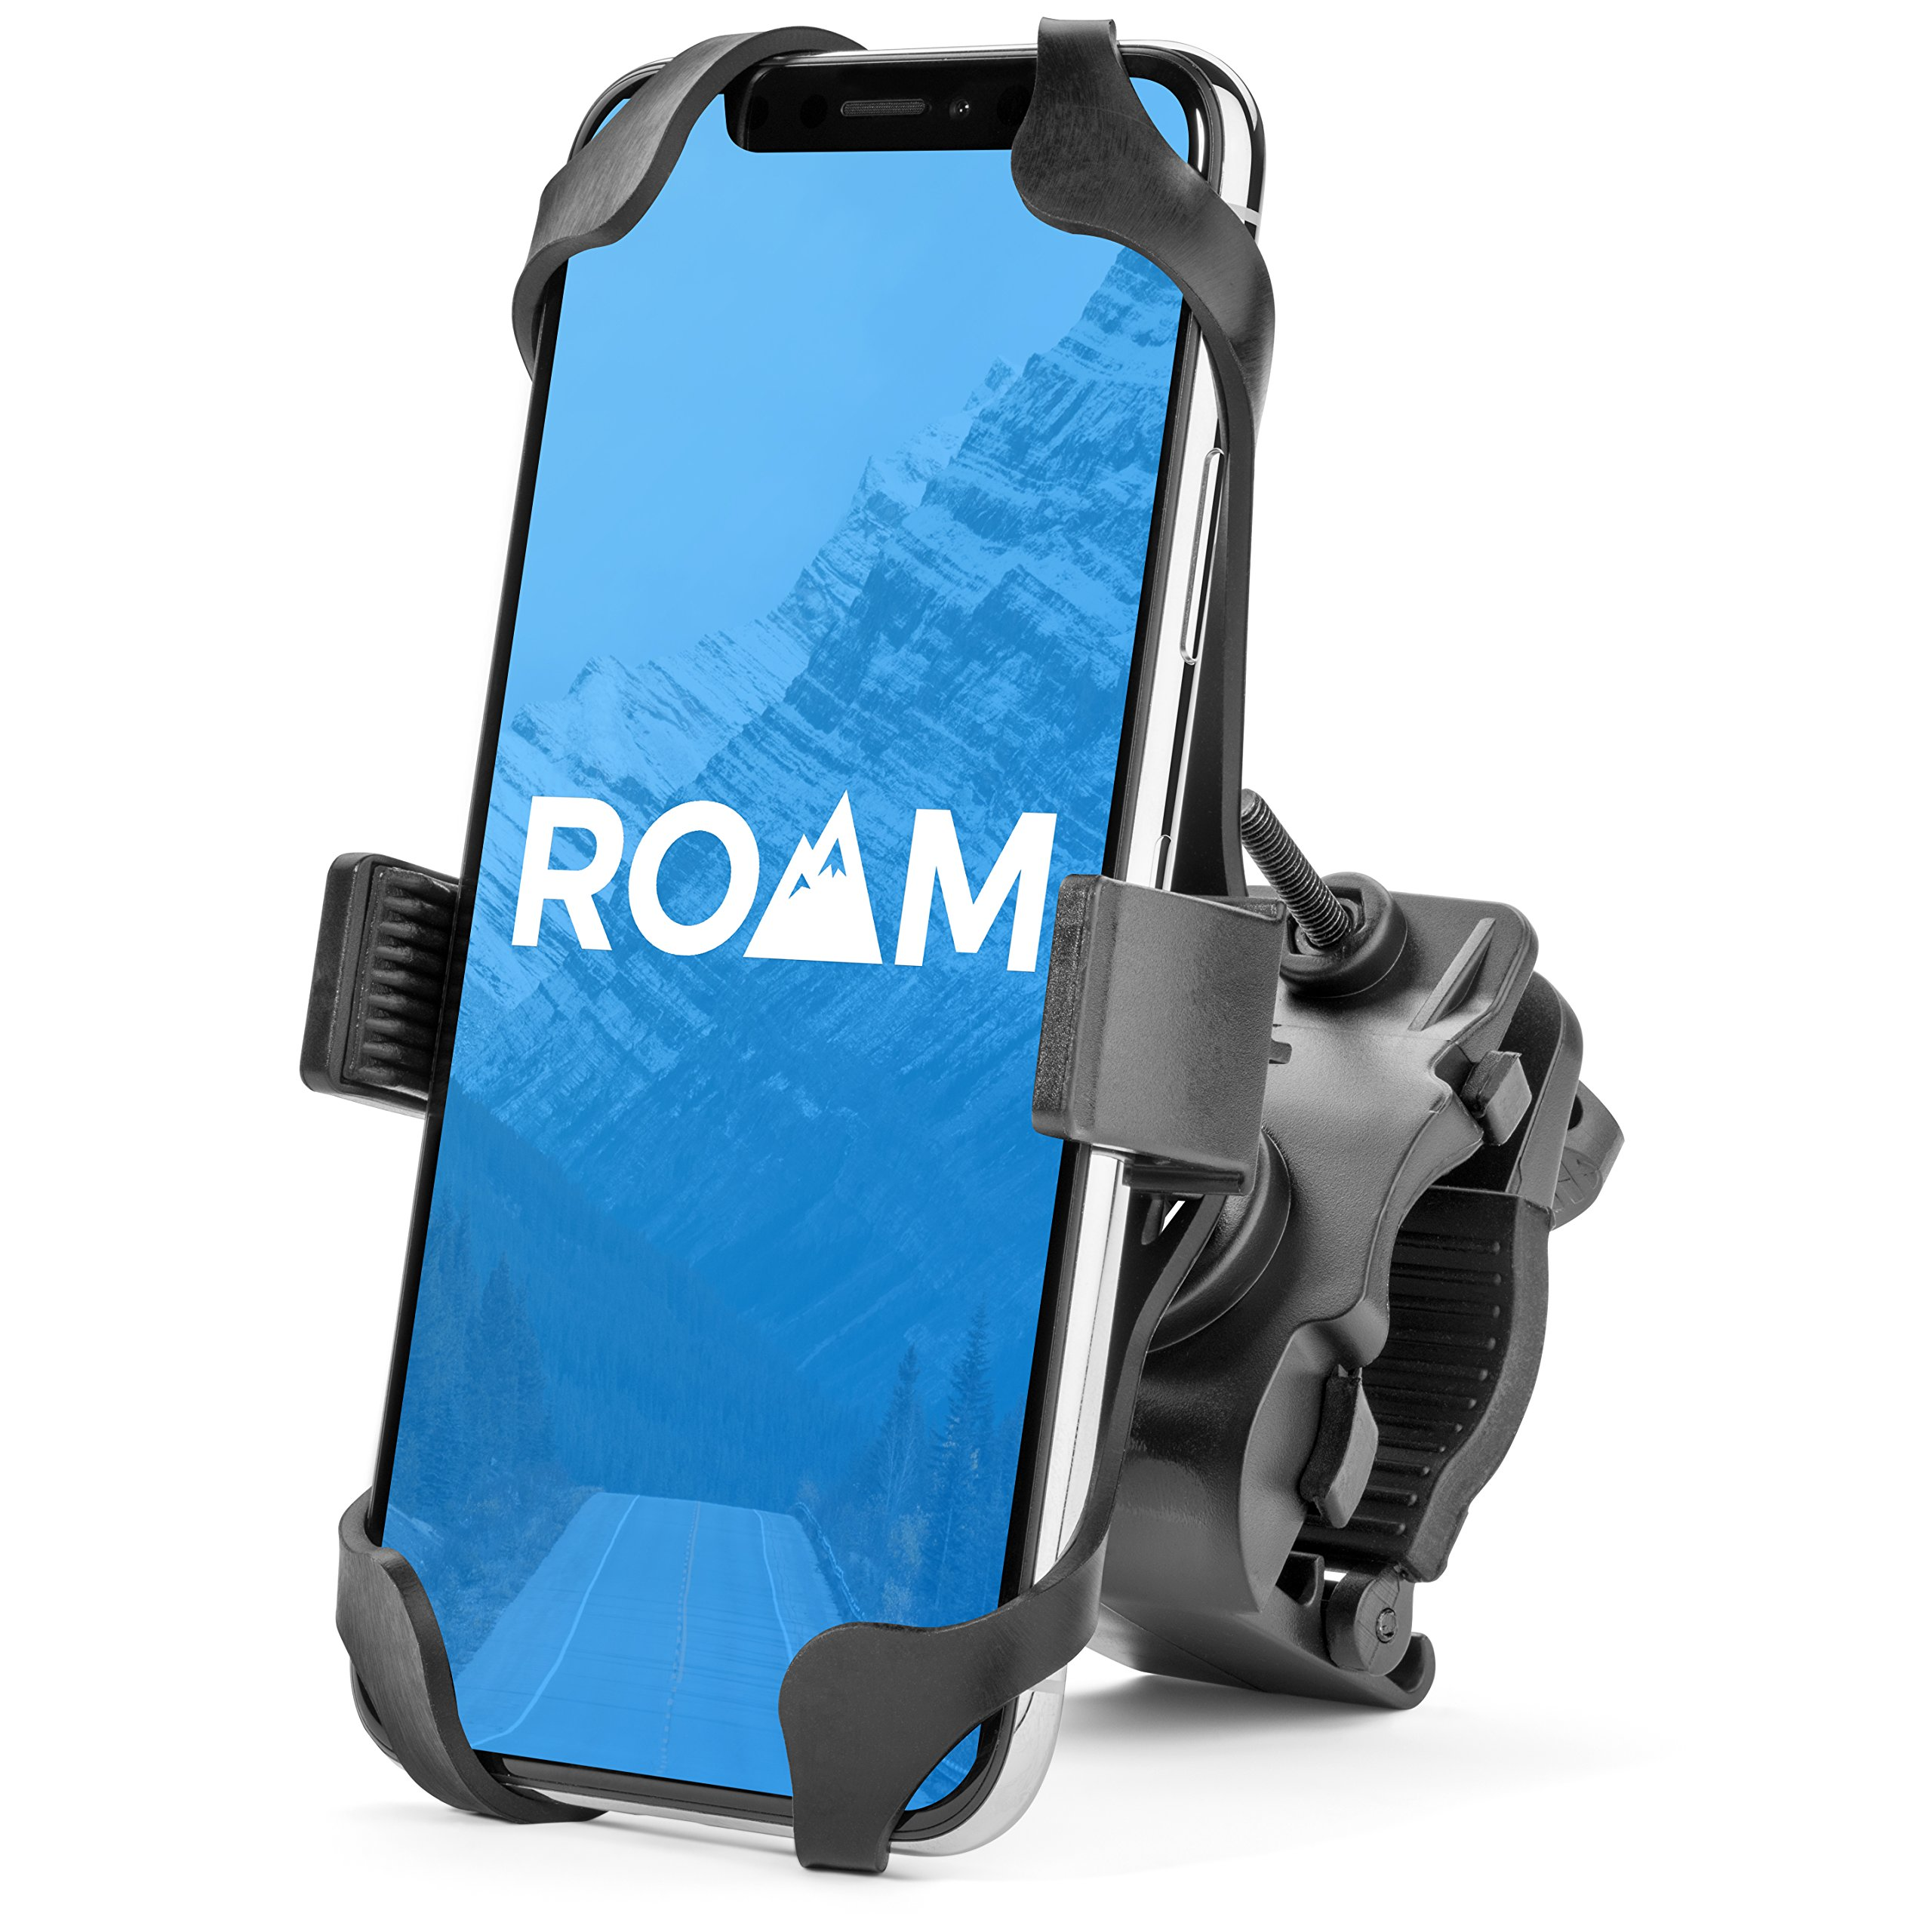 Roam Universal Premium Bike Phone Mount for Motorcycle - Bike Handlebars, Adjustable, Fits iPhone X, 8 | 8 Plus, 7 | 7 Plus, iPhone 6s | 6s Plus, Galaxy S7, S6, S5, Holds Phones Up To 3.5'' Wide